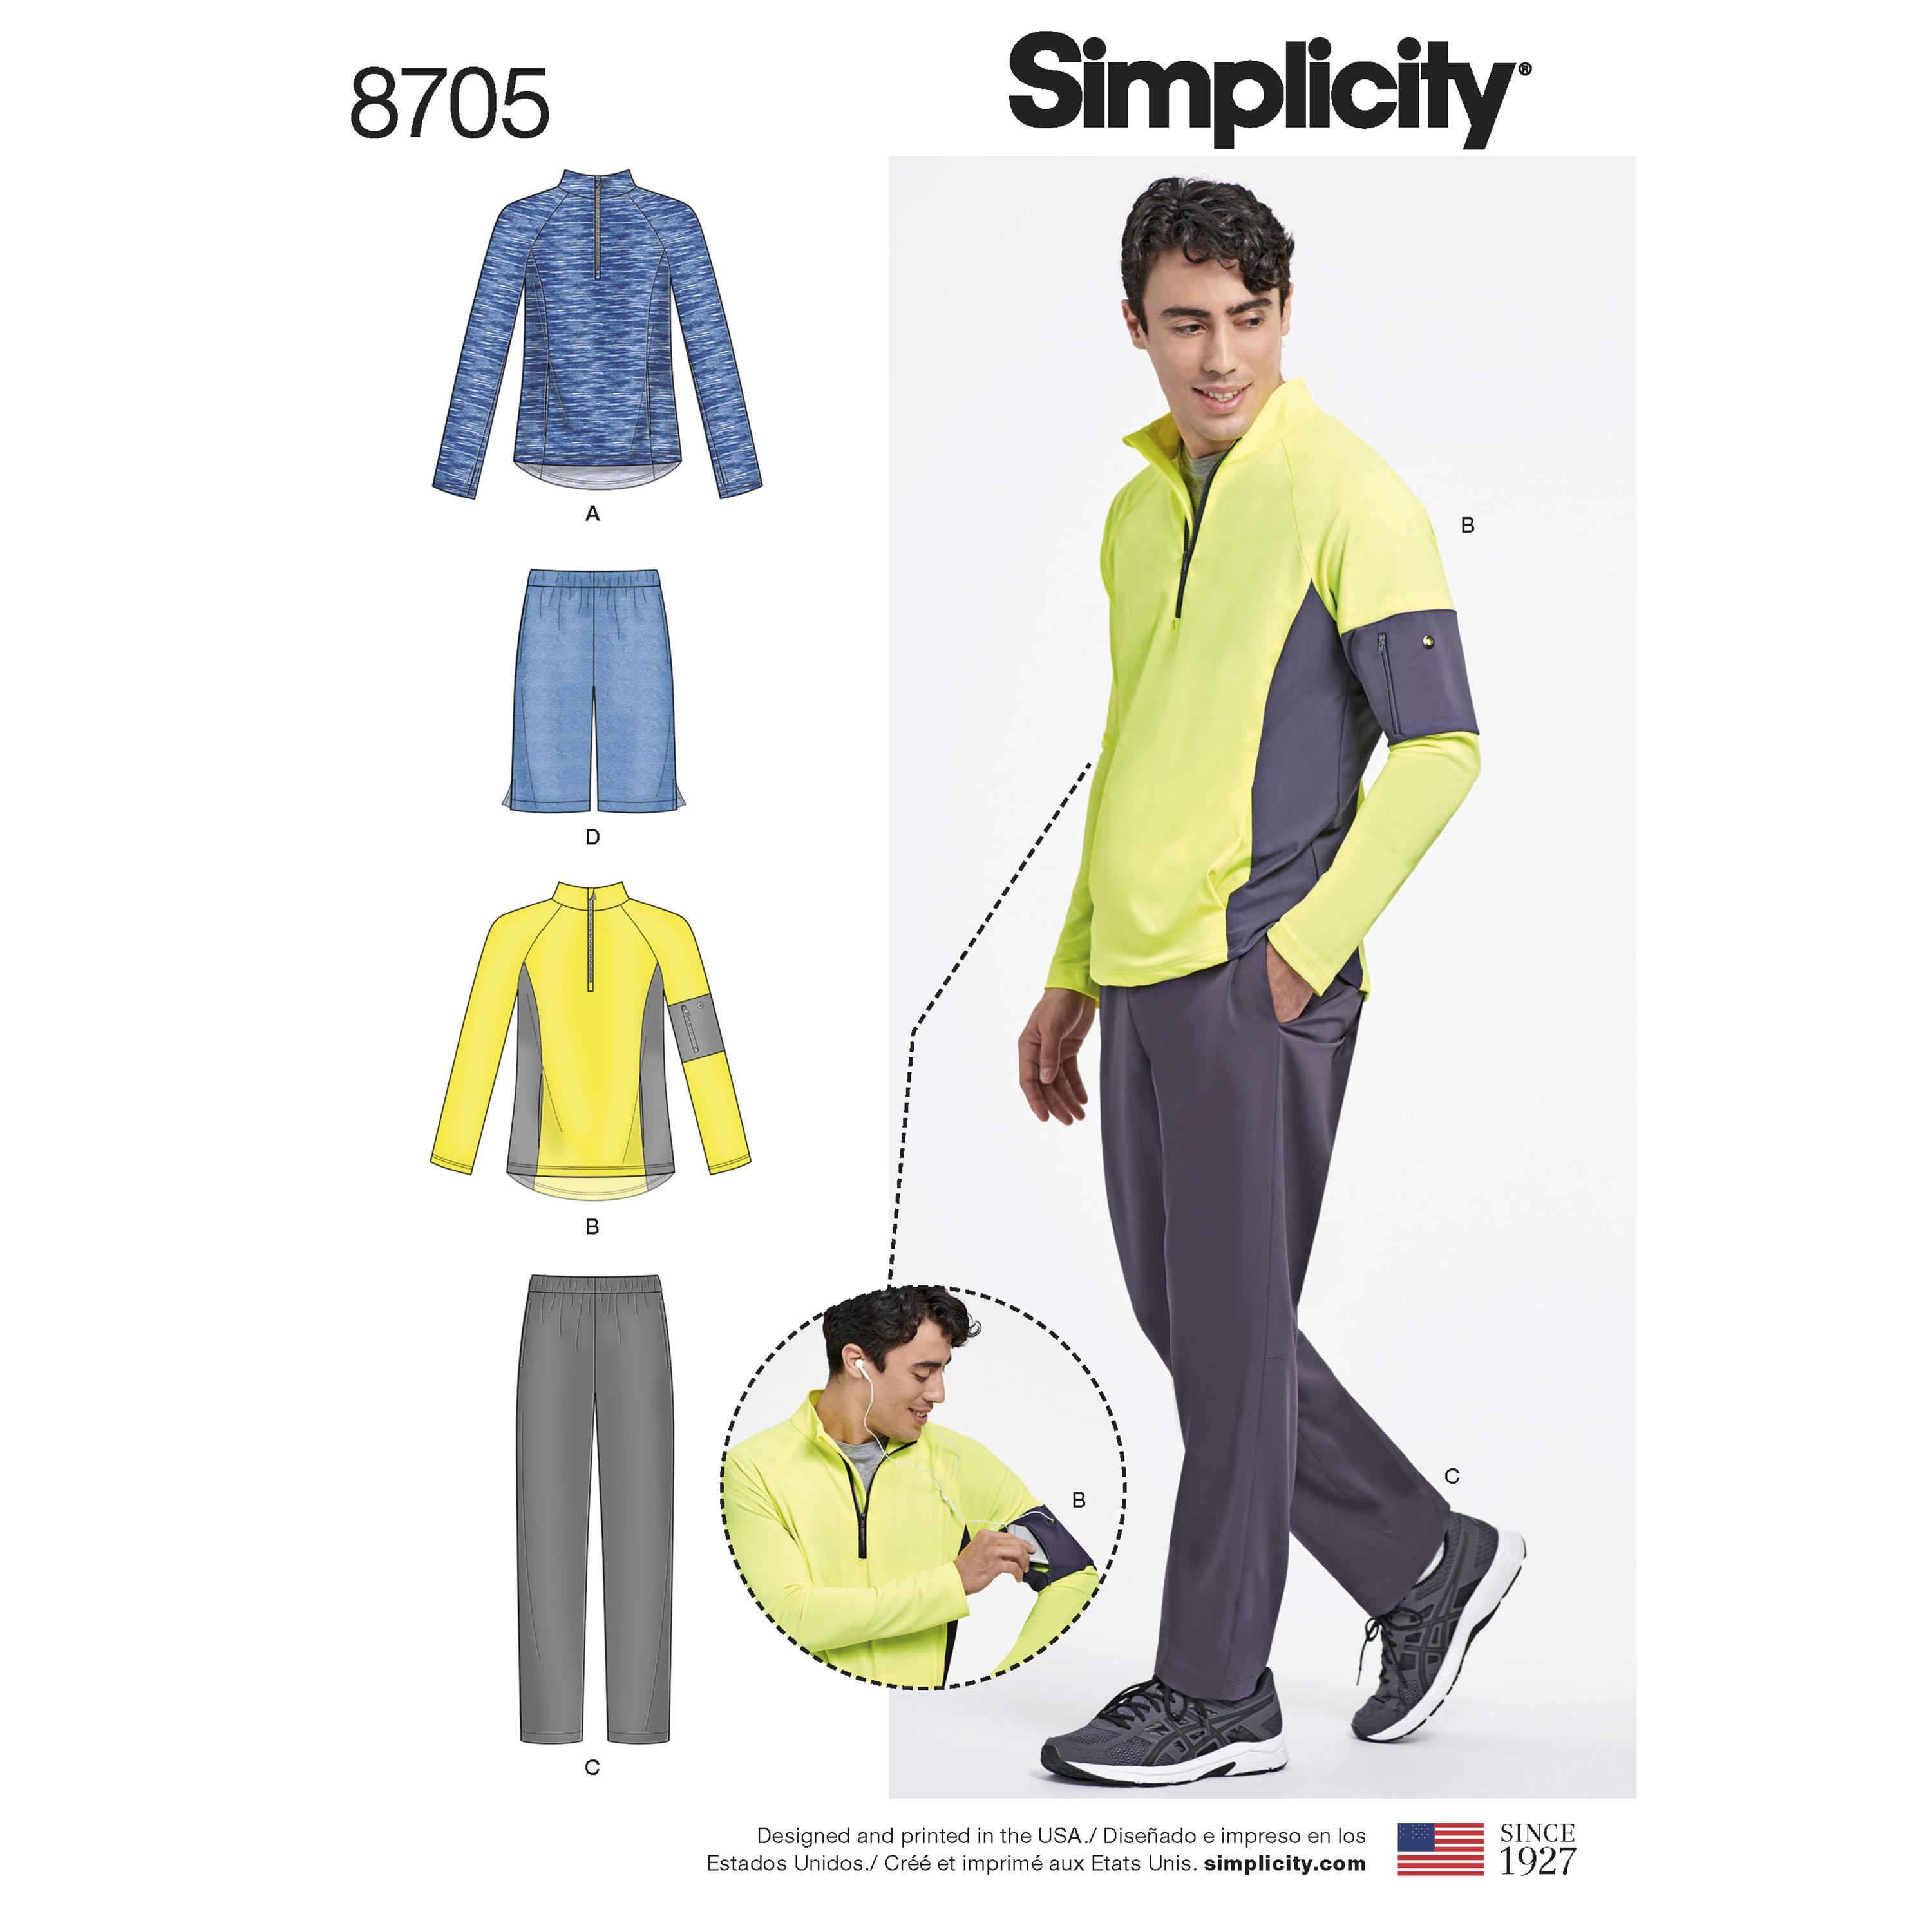 Simplicity S8705 Men's Trousers or Shorts and Knit Pullover Top